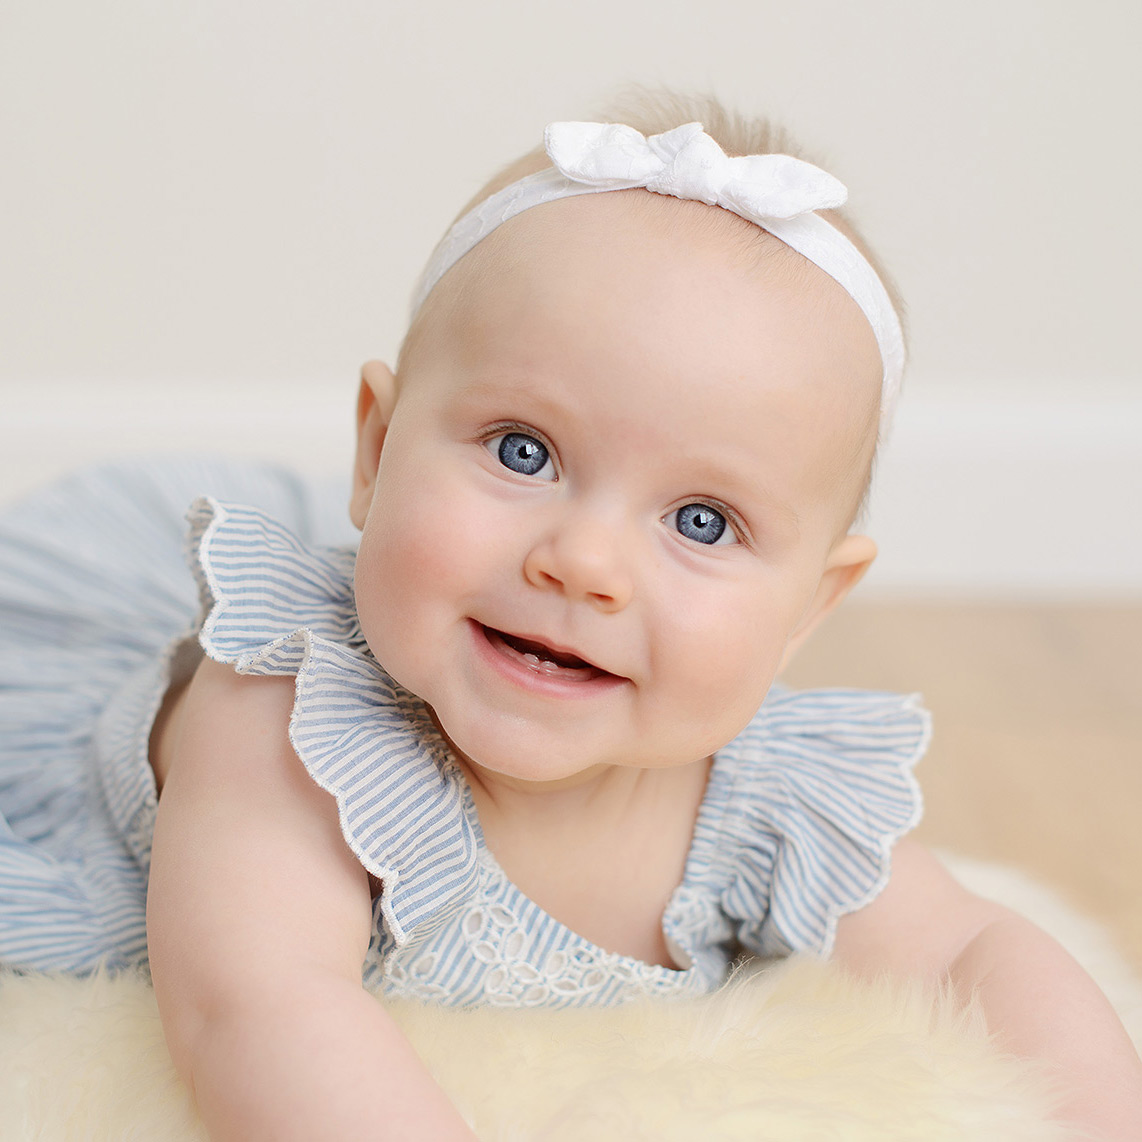 Baby Girl with Blue Eyes Studio Portrait